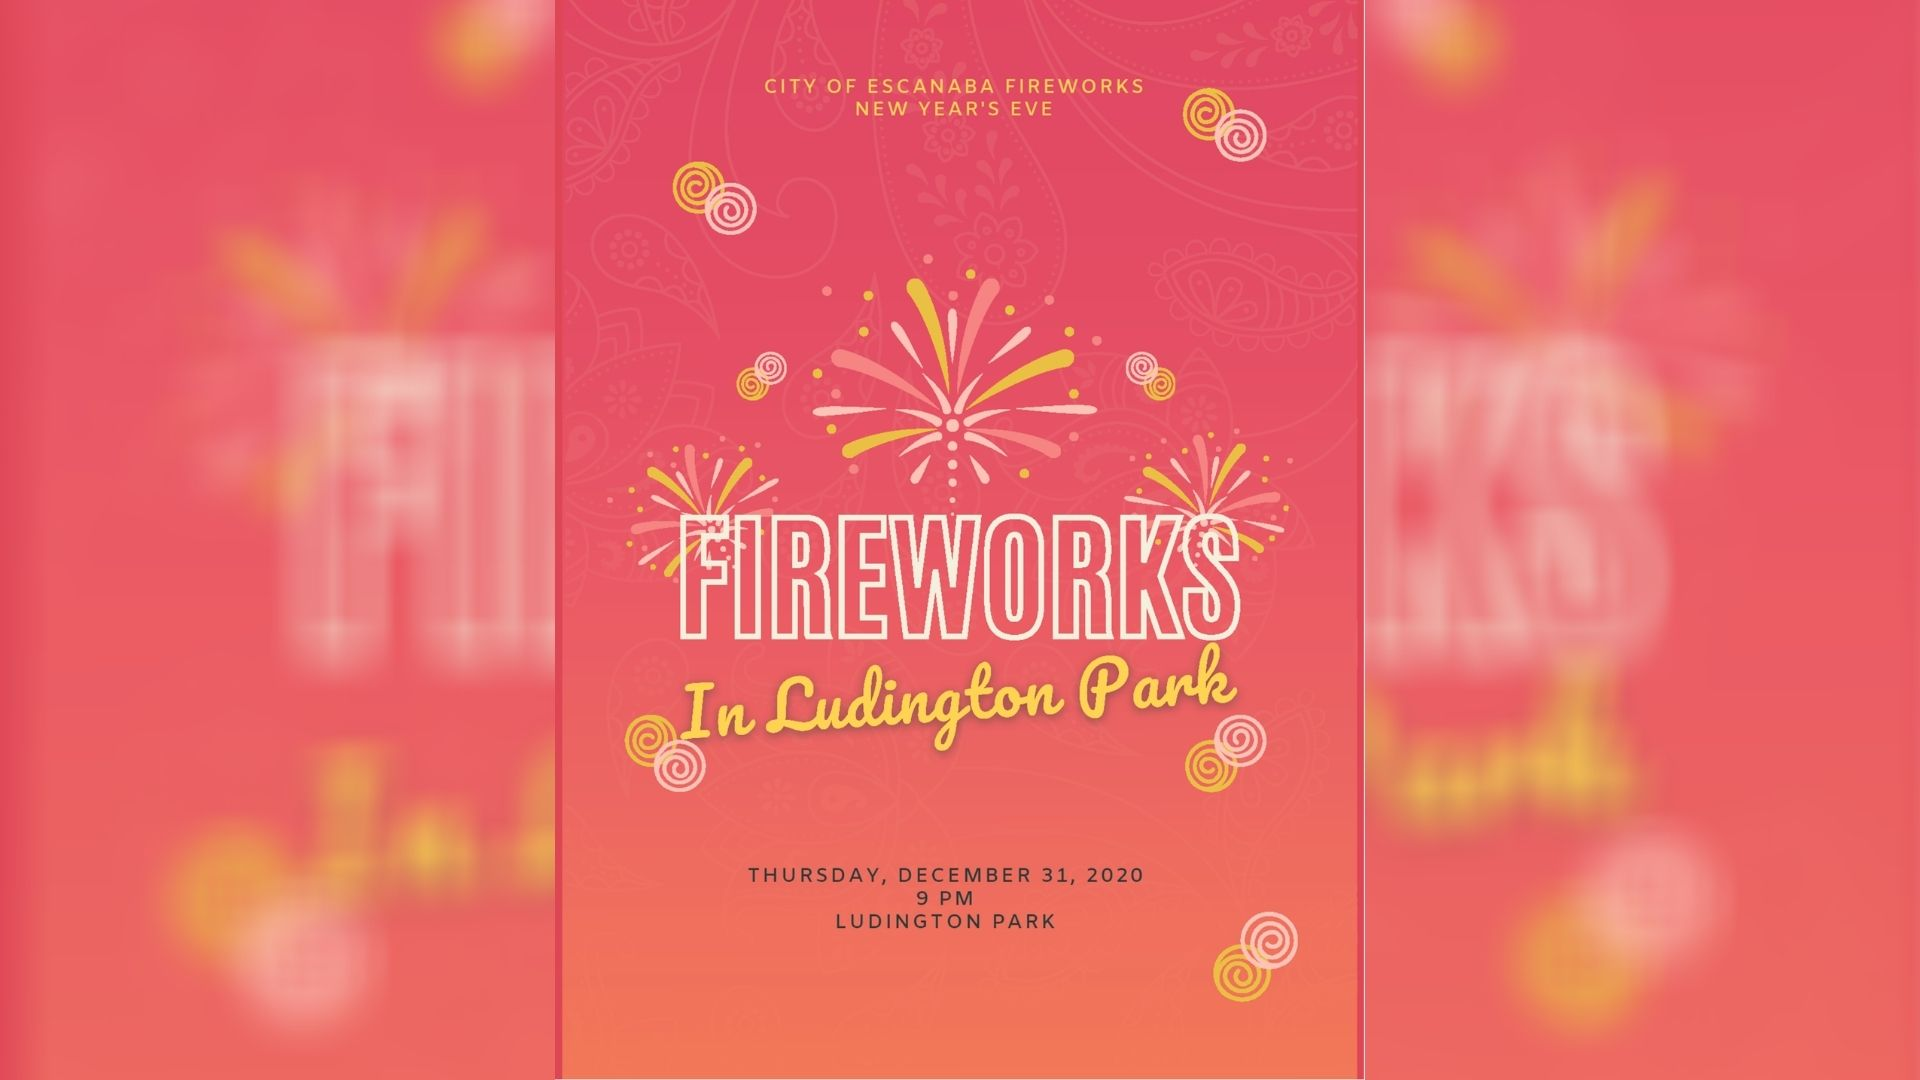 Fireworks in Ludington Park to ring in 2021 this New Year's Eve | WJMN - UPMatters.com